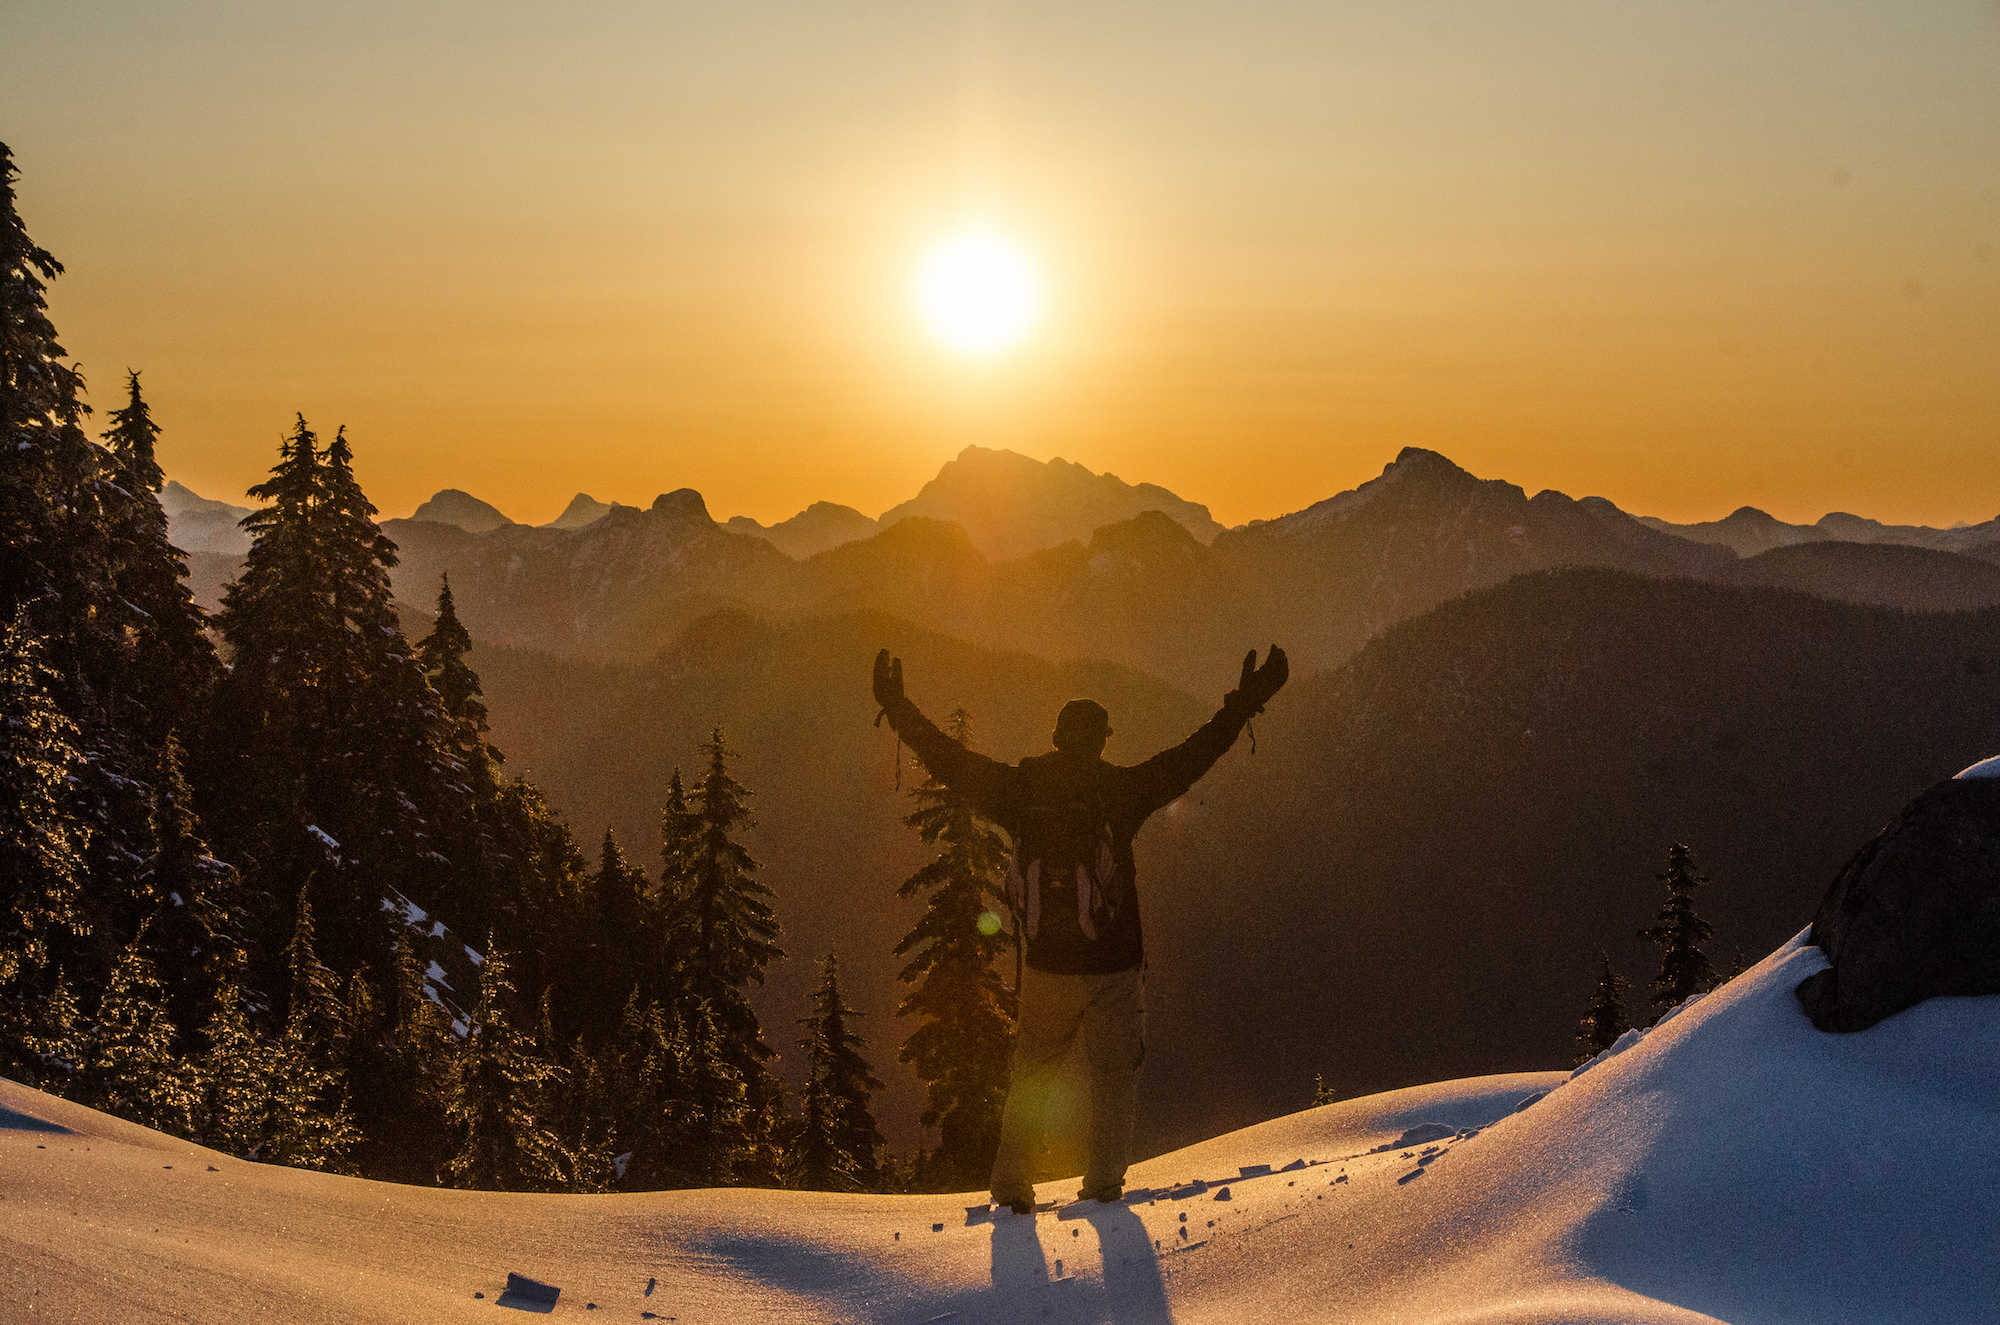 Photo by Adam Nagy. Taken up Mount Seymour on April 5th, 2015!